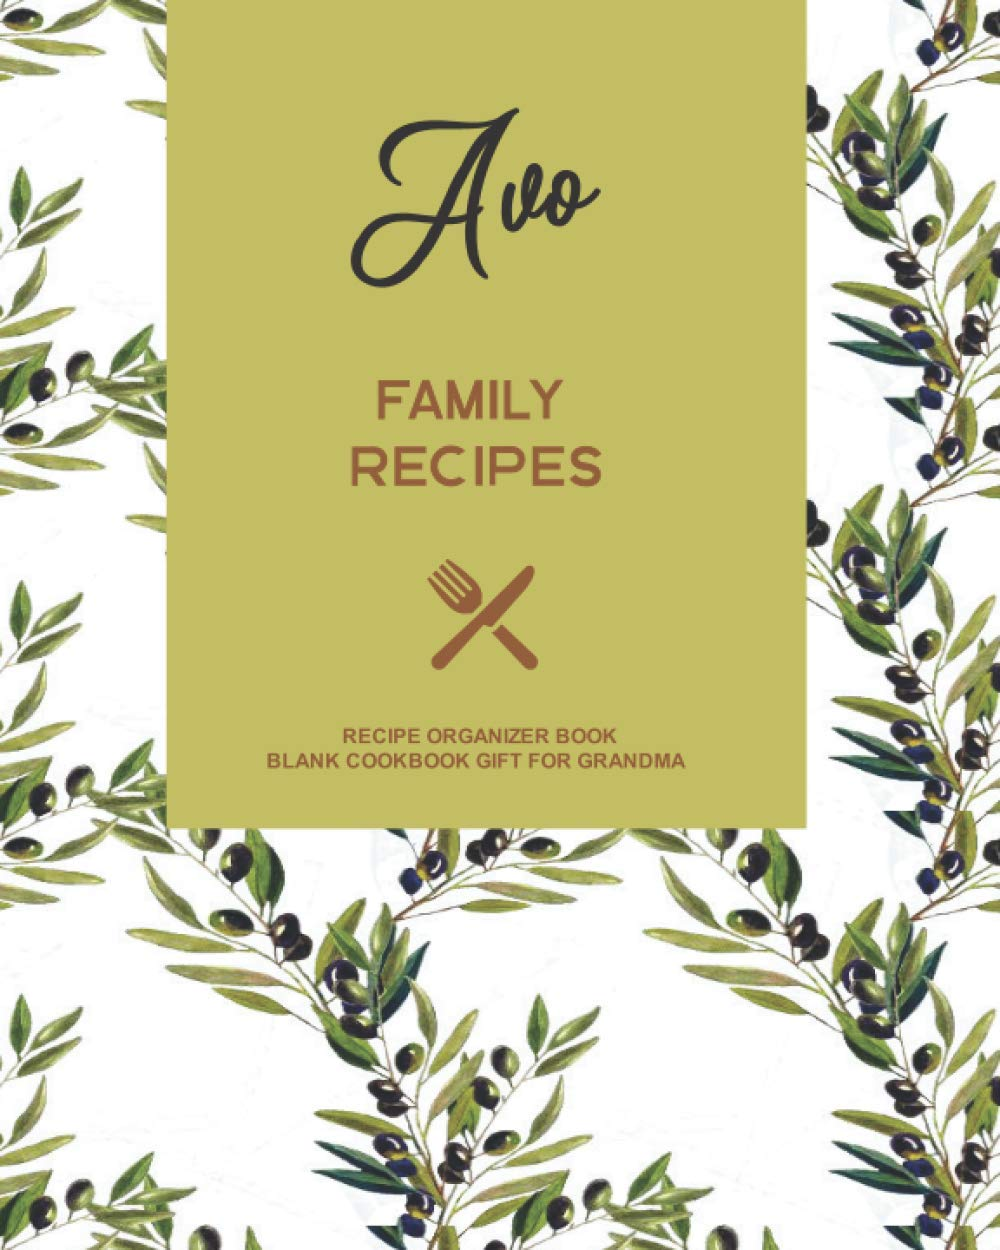 Avo Family Recipes Recipe Organizer Book Blank Cookbook Gift For Grandma Portuguese Grandmother Cooking Book Journal To Write In Your Own Family Favorite Meals With Coloring Book Pages Designs